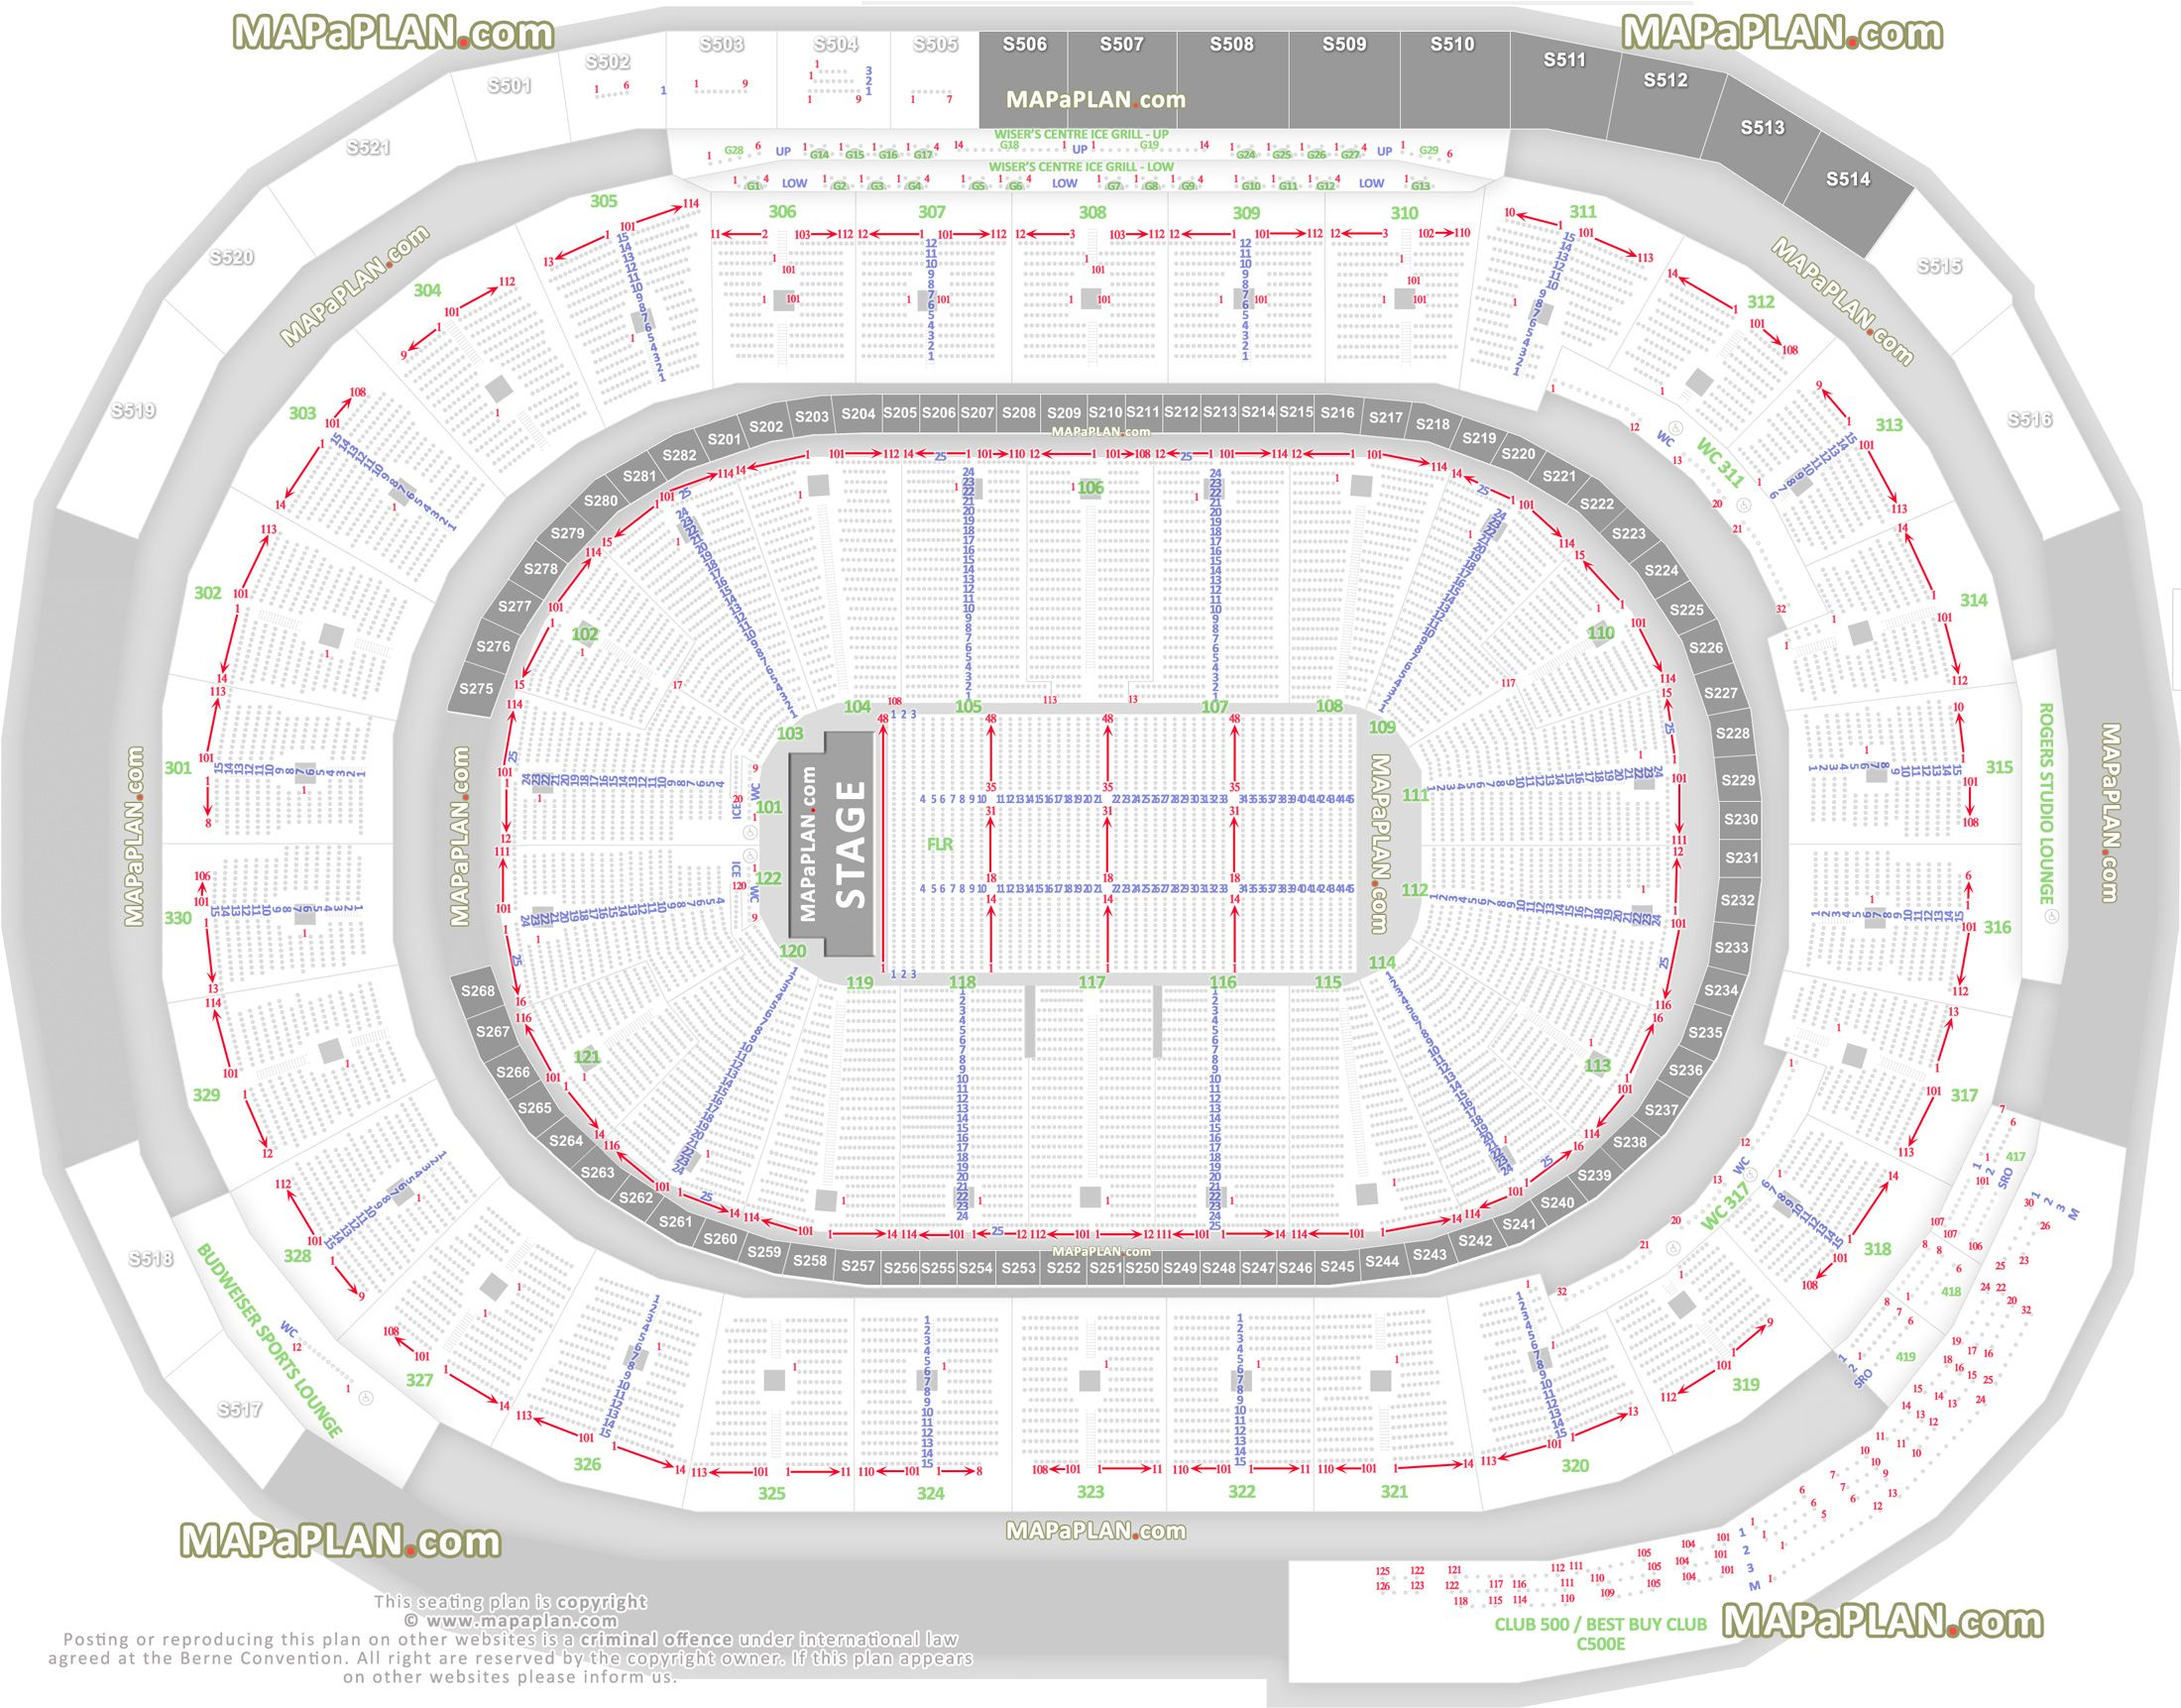 detailed seat row numbers end stage full concert sections floor plan arena lower upper bowl layout